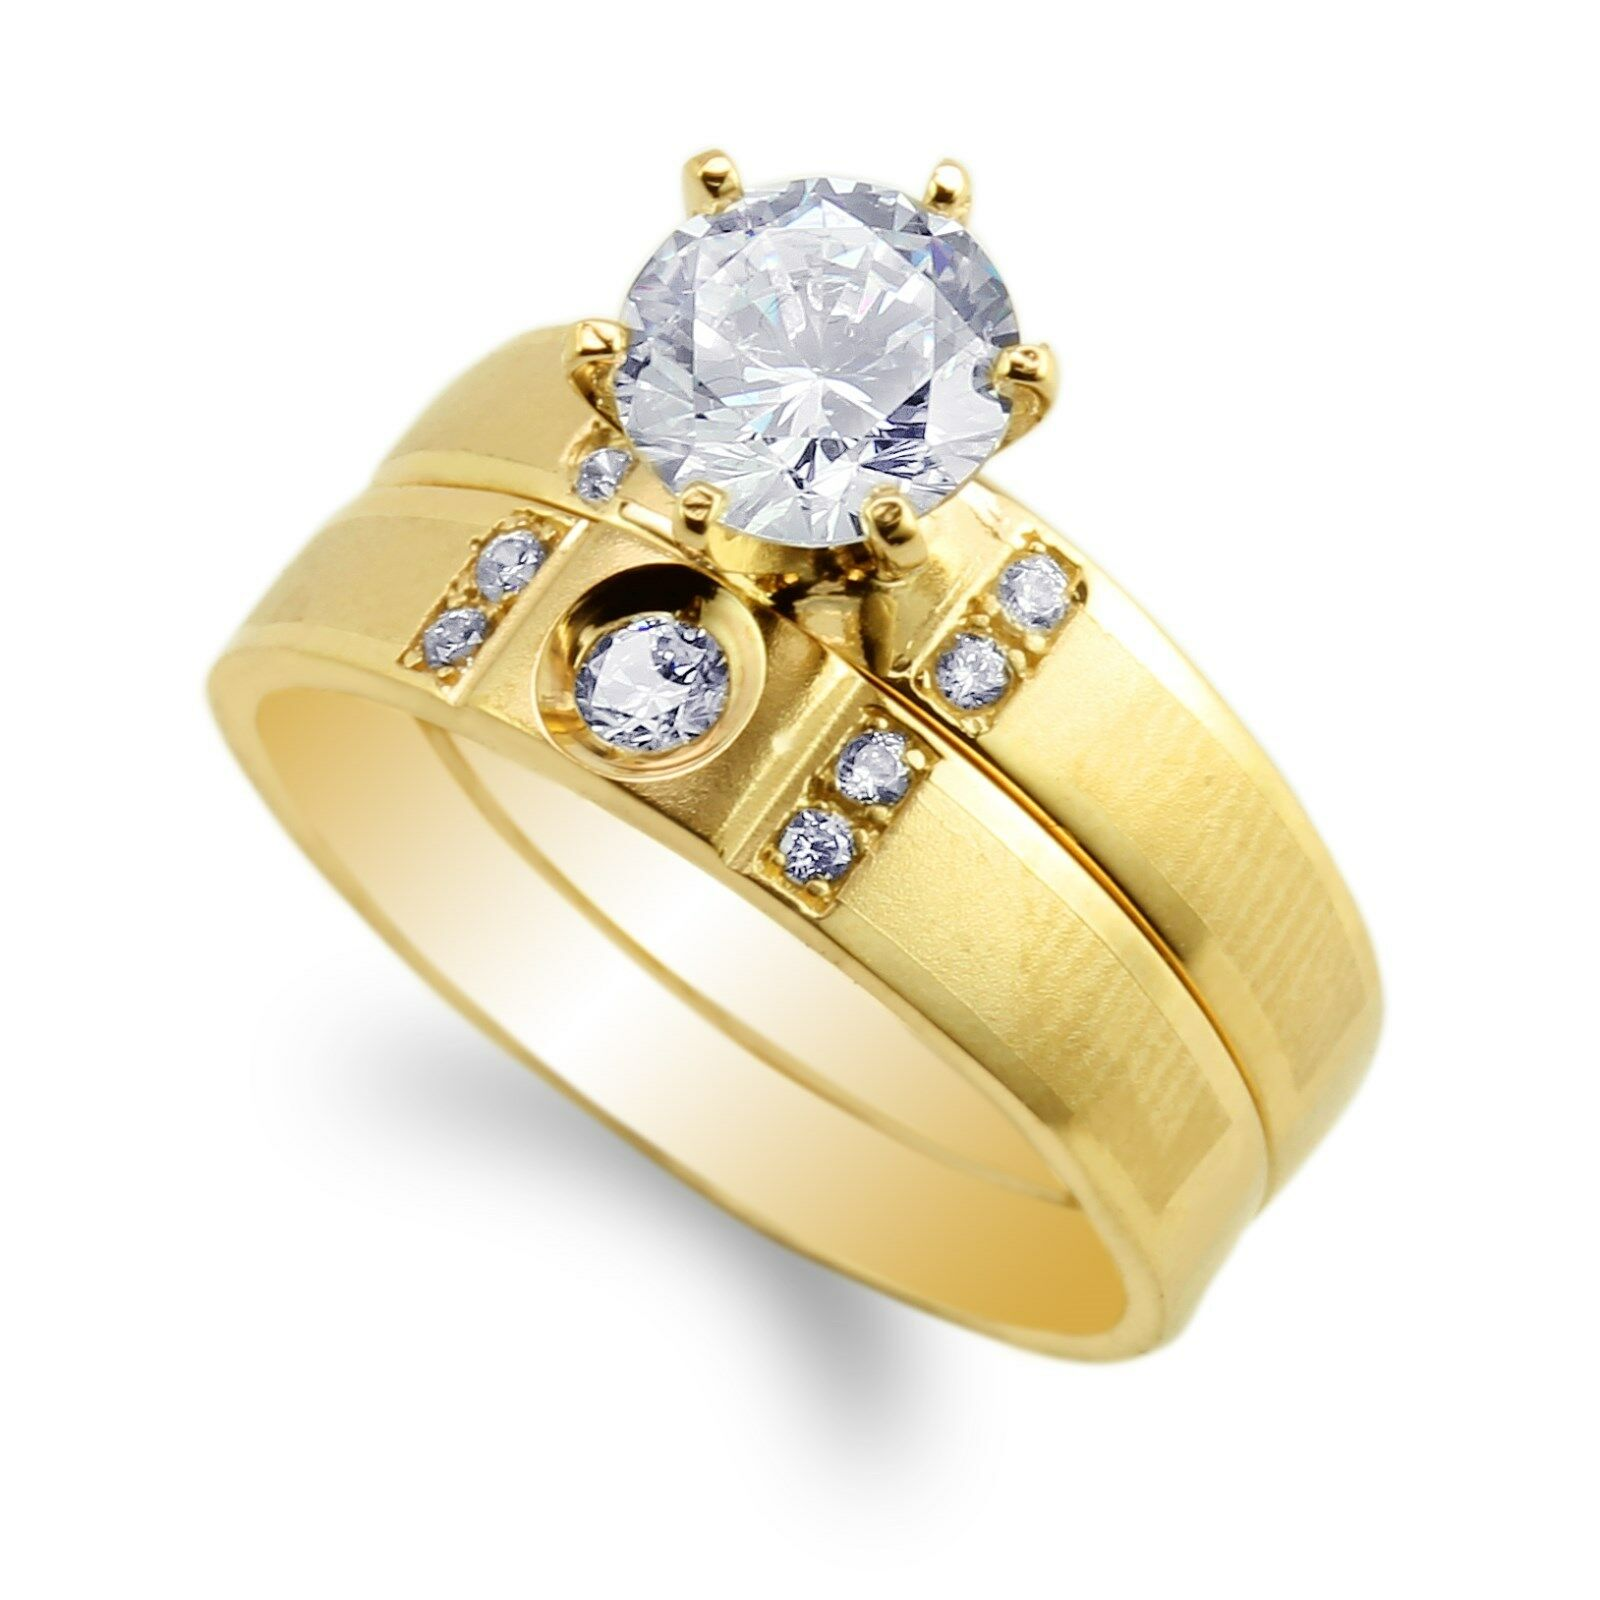 856941135b30 JamesJenny Womens gold Plated Engagement Set Ring Size 4-9 Yellow  ngxwrd5352-Rings